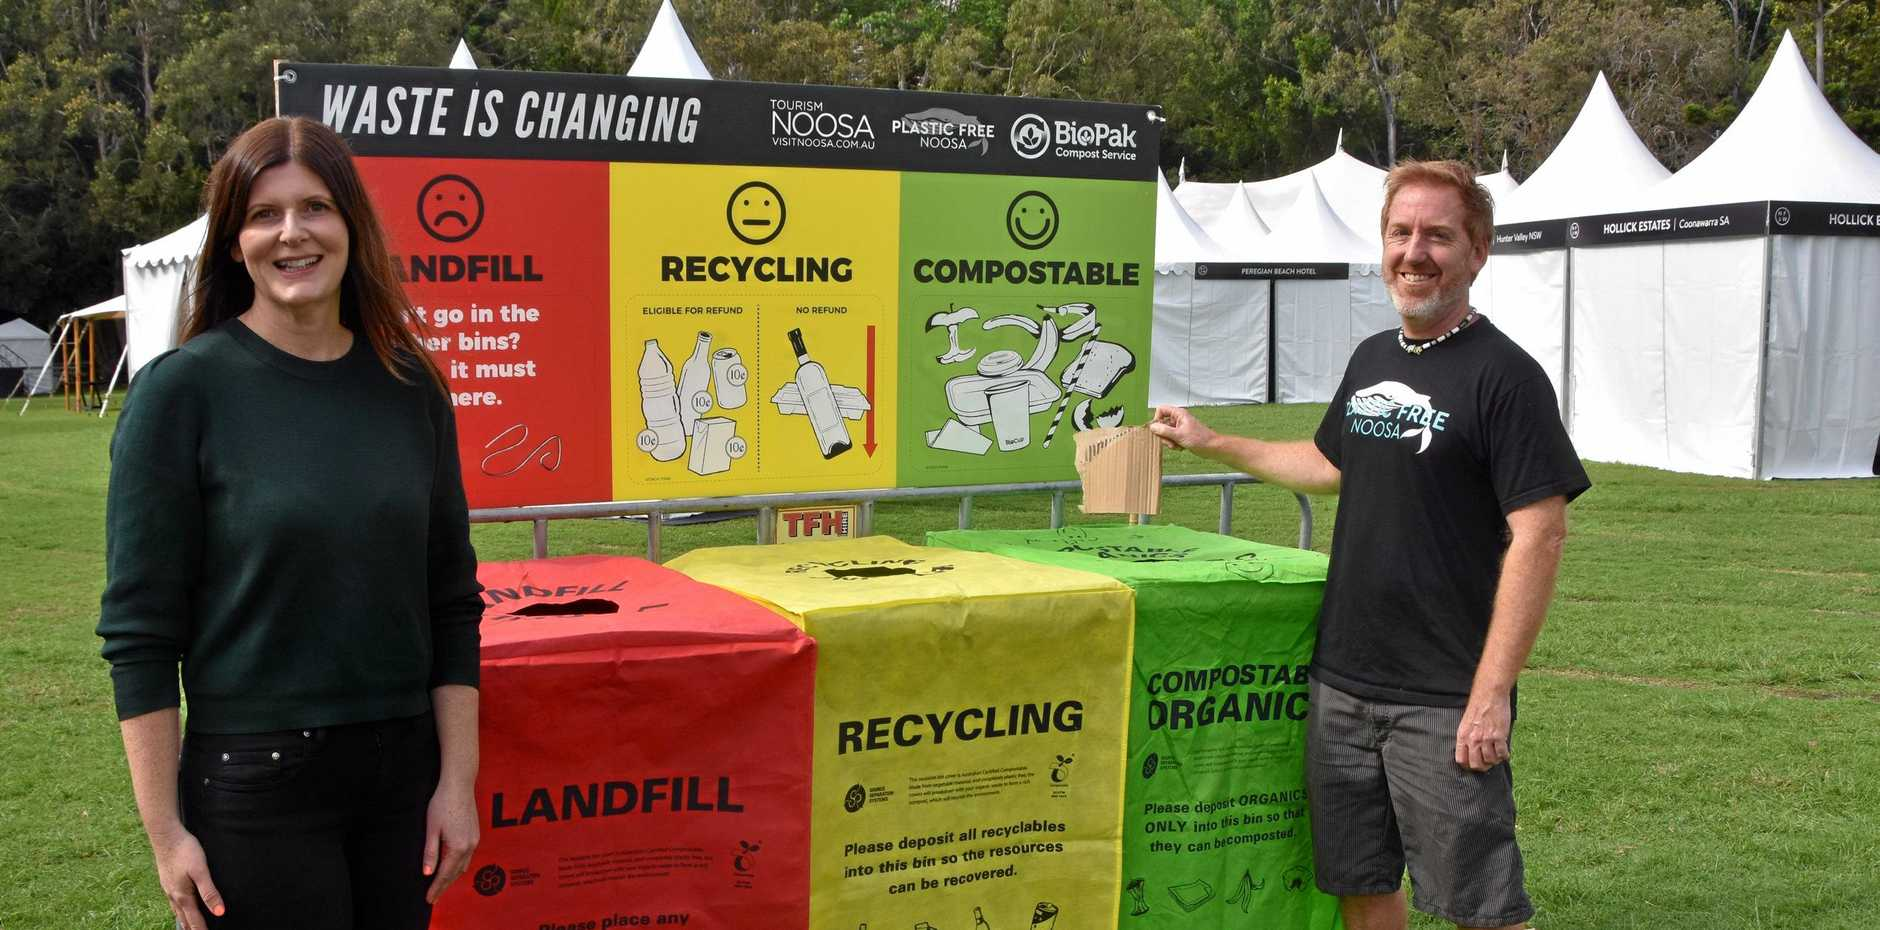 ZERO WASTE: Noosa Food and Wine Festival director Sheridah Puttick and Plastic Free Noosa's Chad Buxton are encouraging a sustainable event this year.